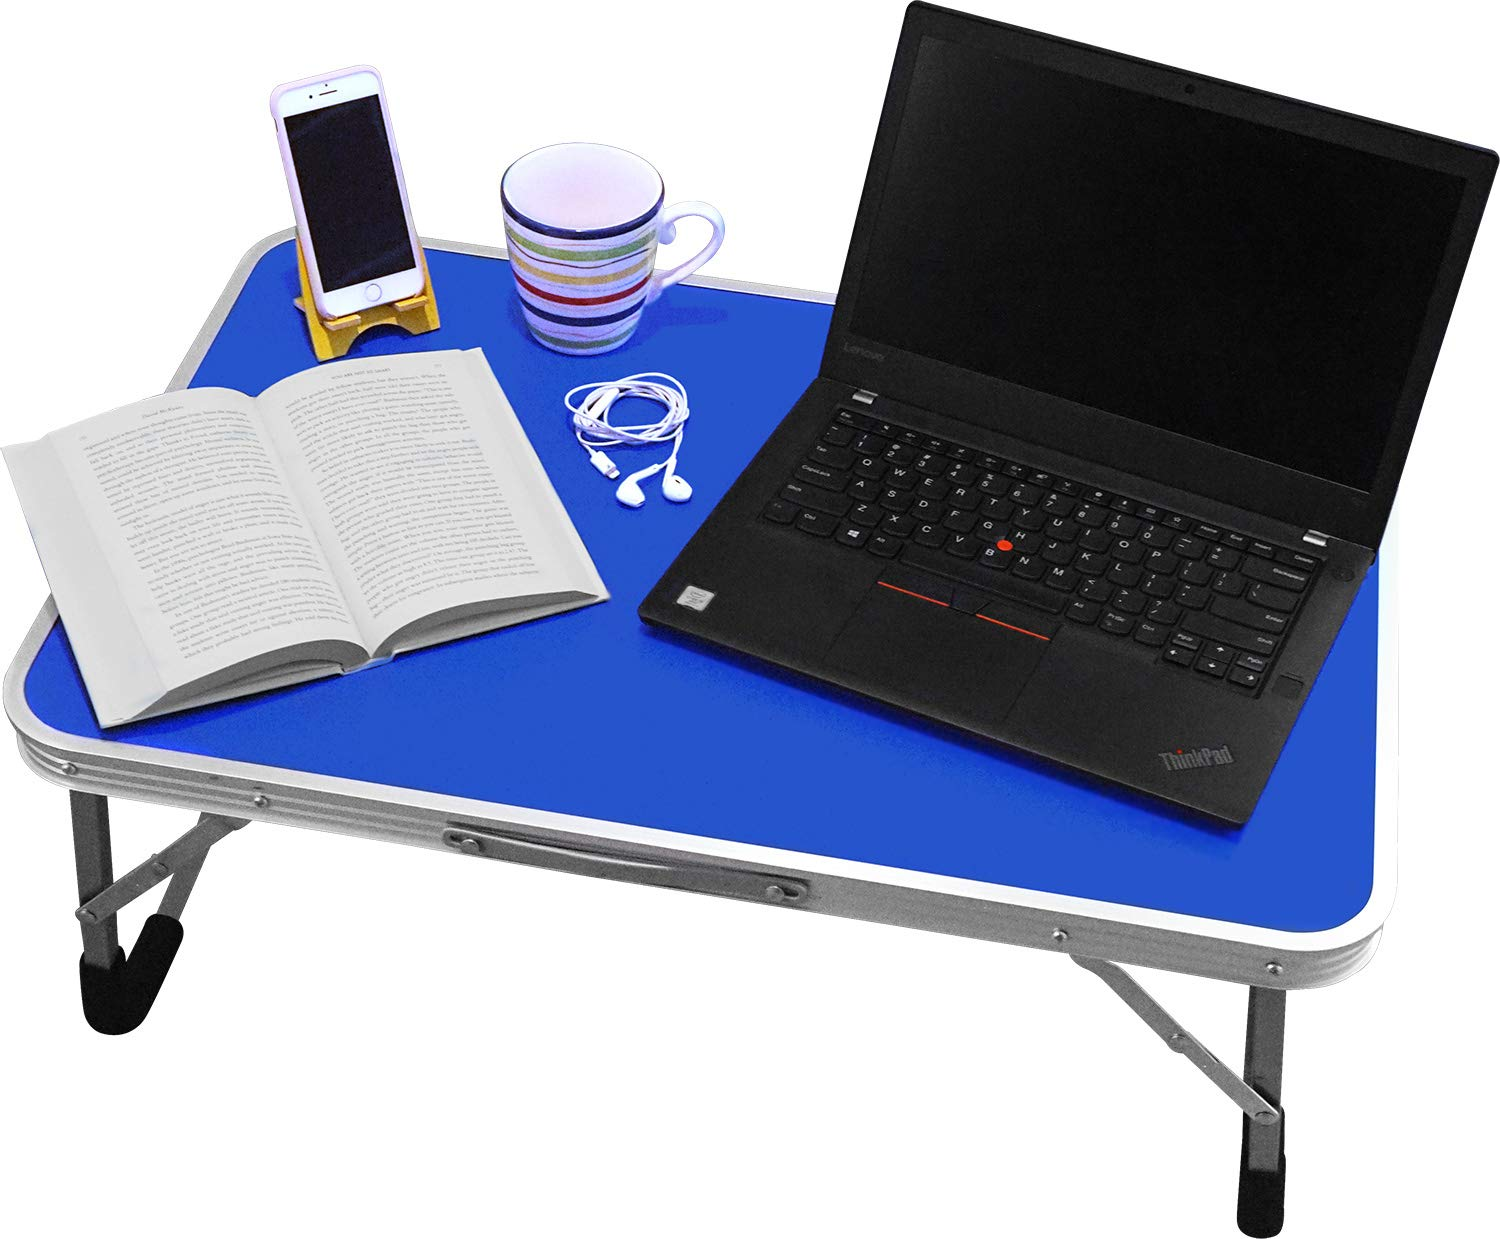 Extra Large Folding Desk Tray - Featuring Locking Foldable Leg Design and Carry Handle - for use in Bed, Computer, Picnic, or Kids Playtime by BrightCare (Image #2)